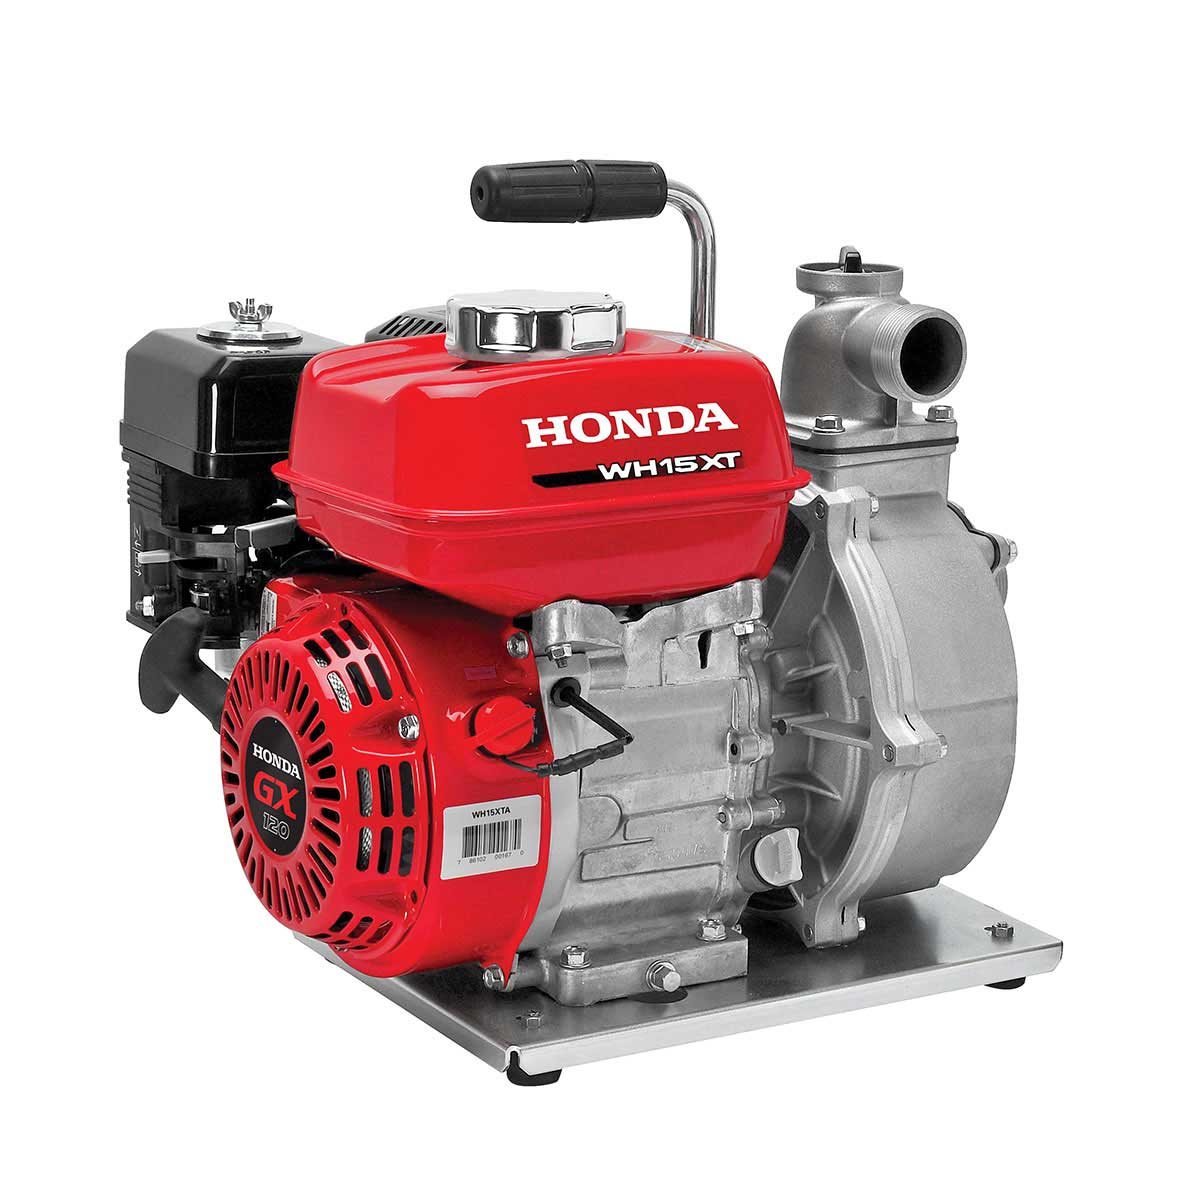 Honda WH15XK1C1 High Pressure Water Pump